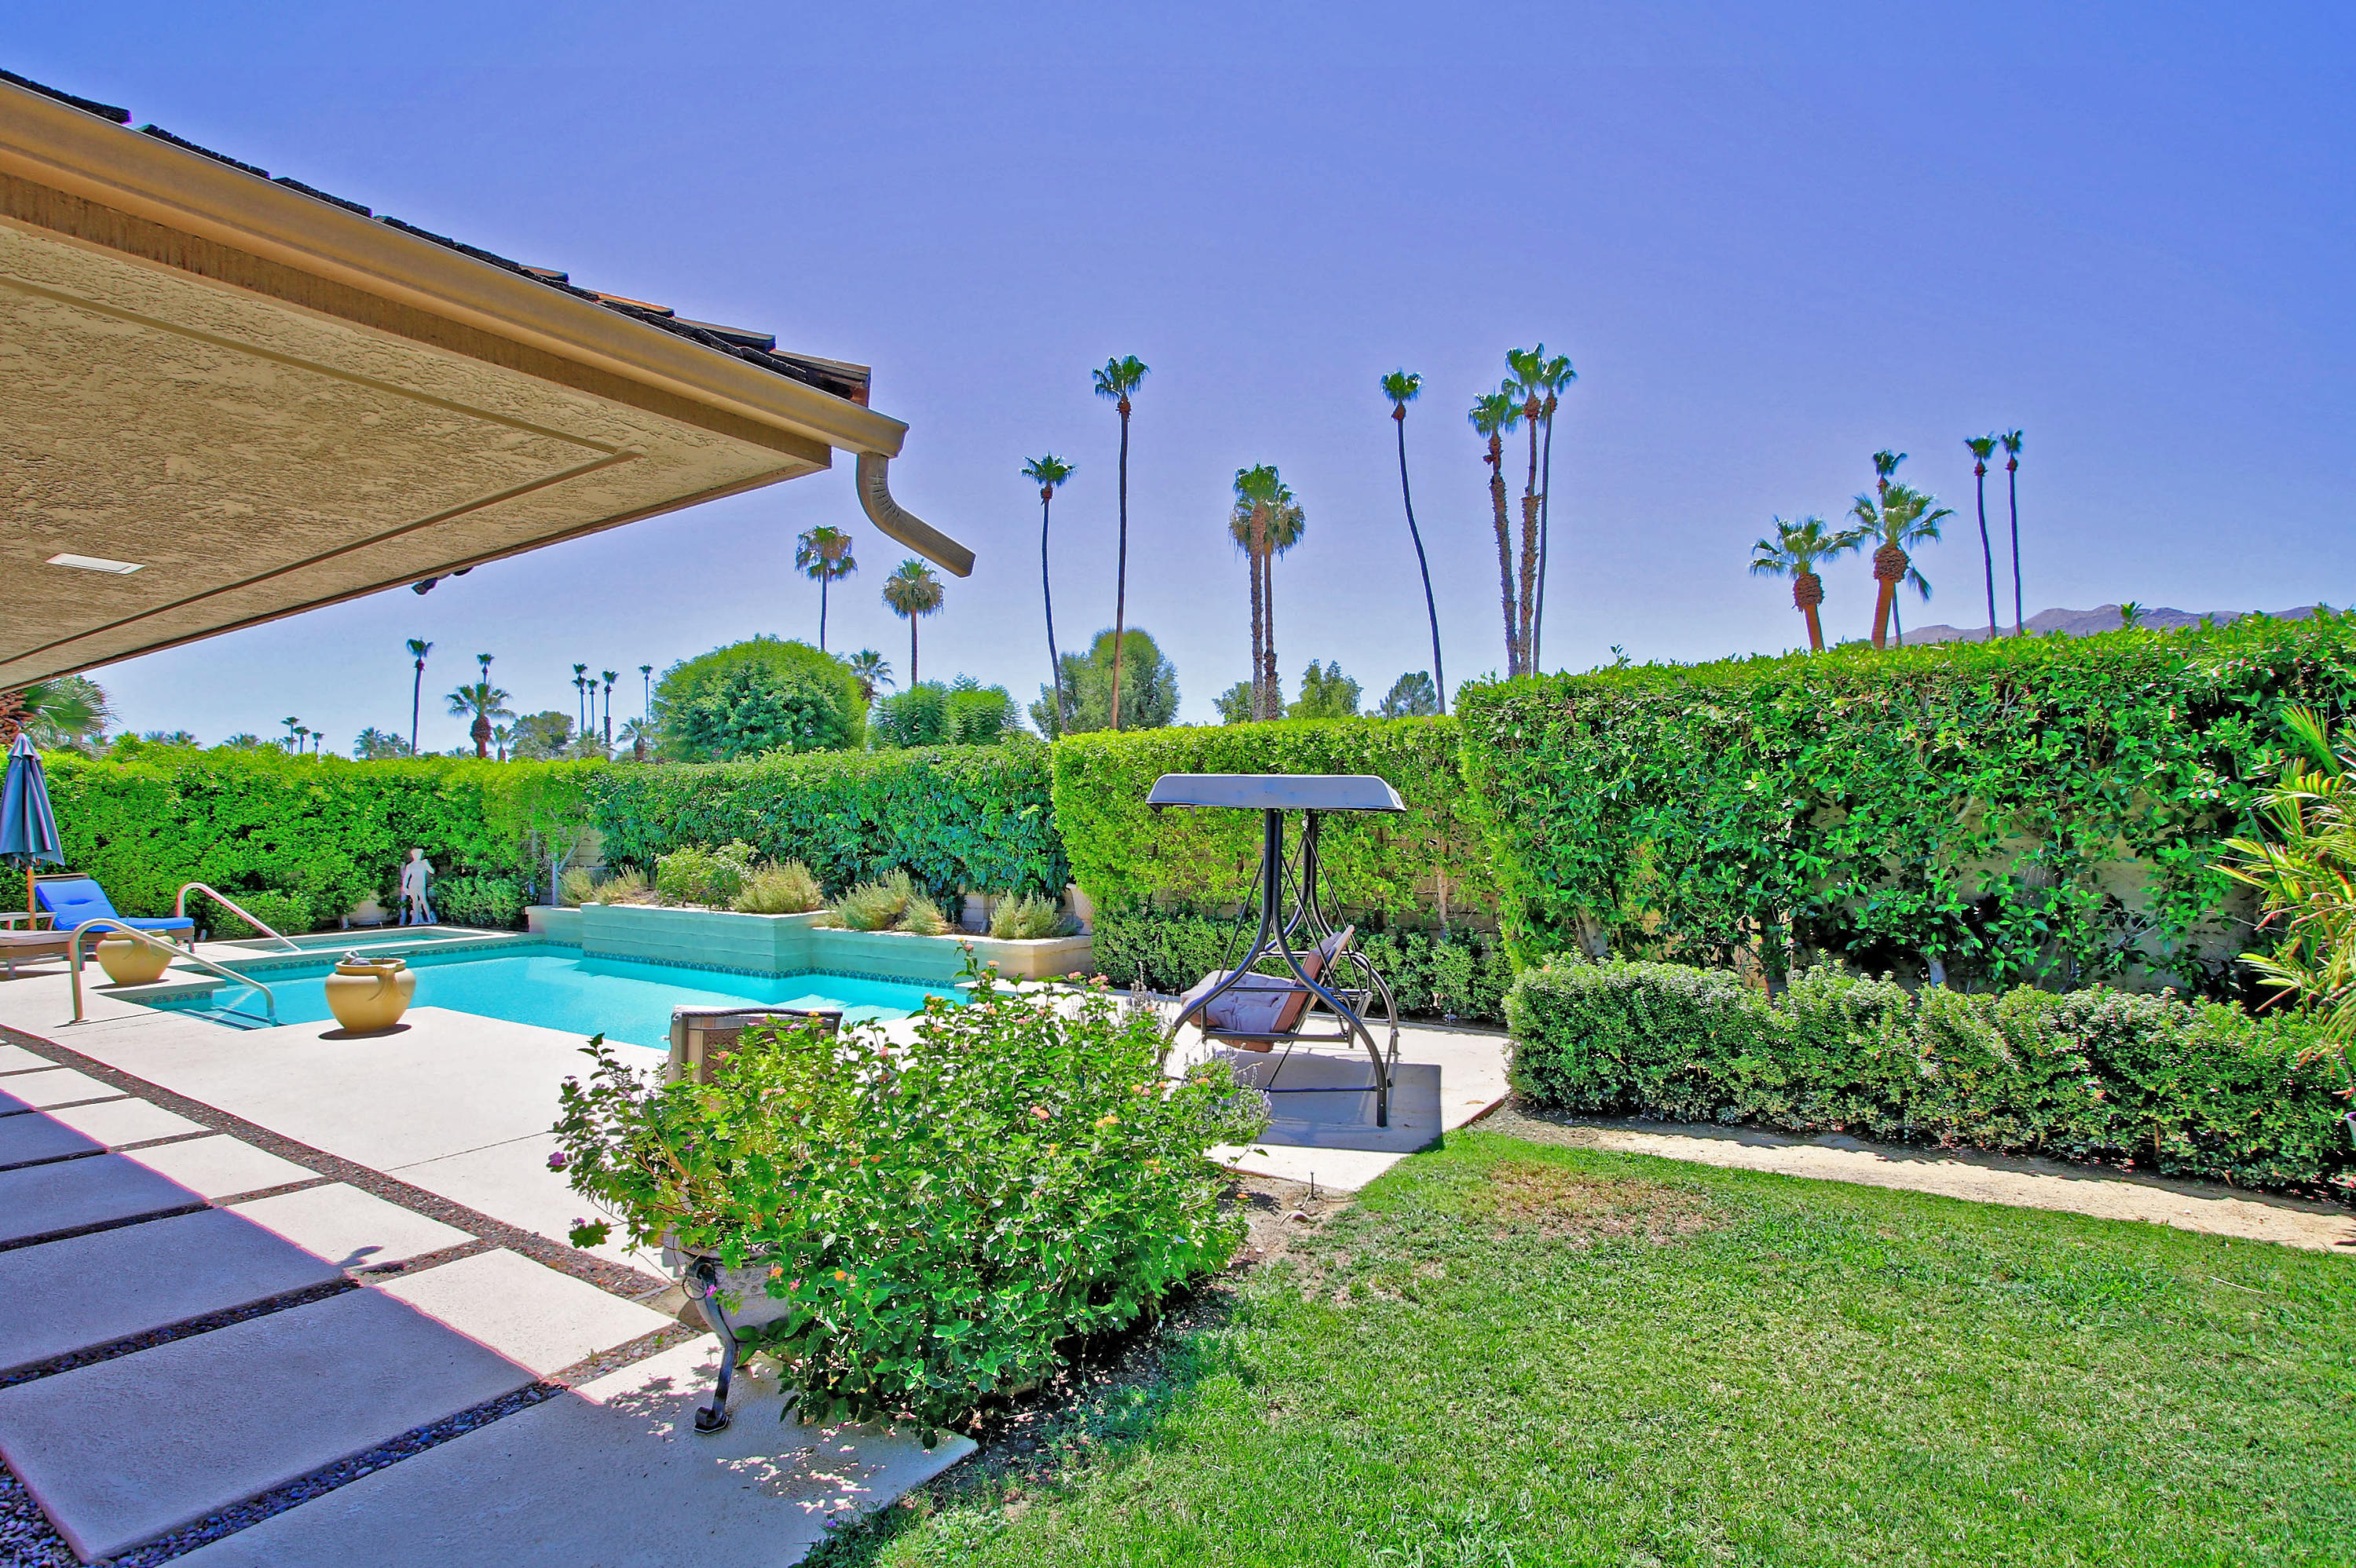 15 Mcgill Drive, Rancho Mirage, California 92270, 3 Bedrooms Bedrooms, ,3 BathroomsBathrooms,Residential,For Sale,15 Mcgill Drive,219045837